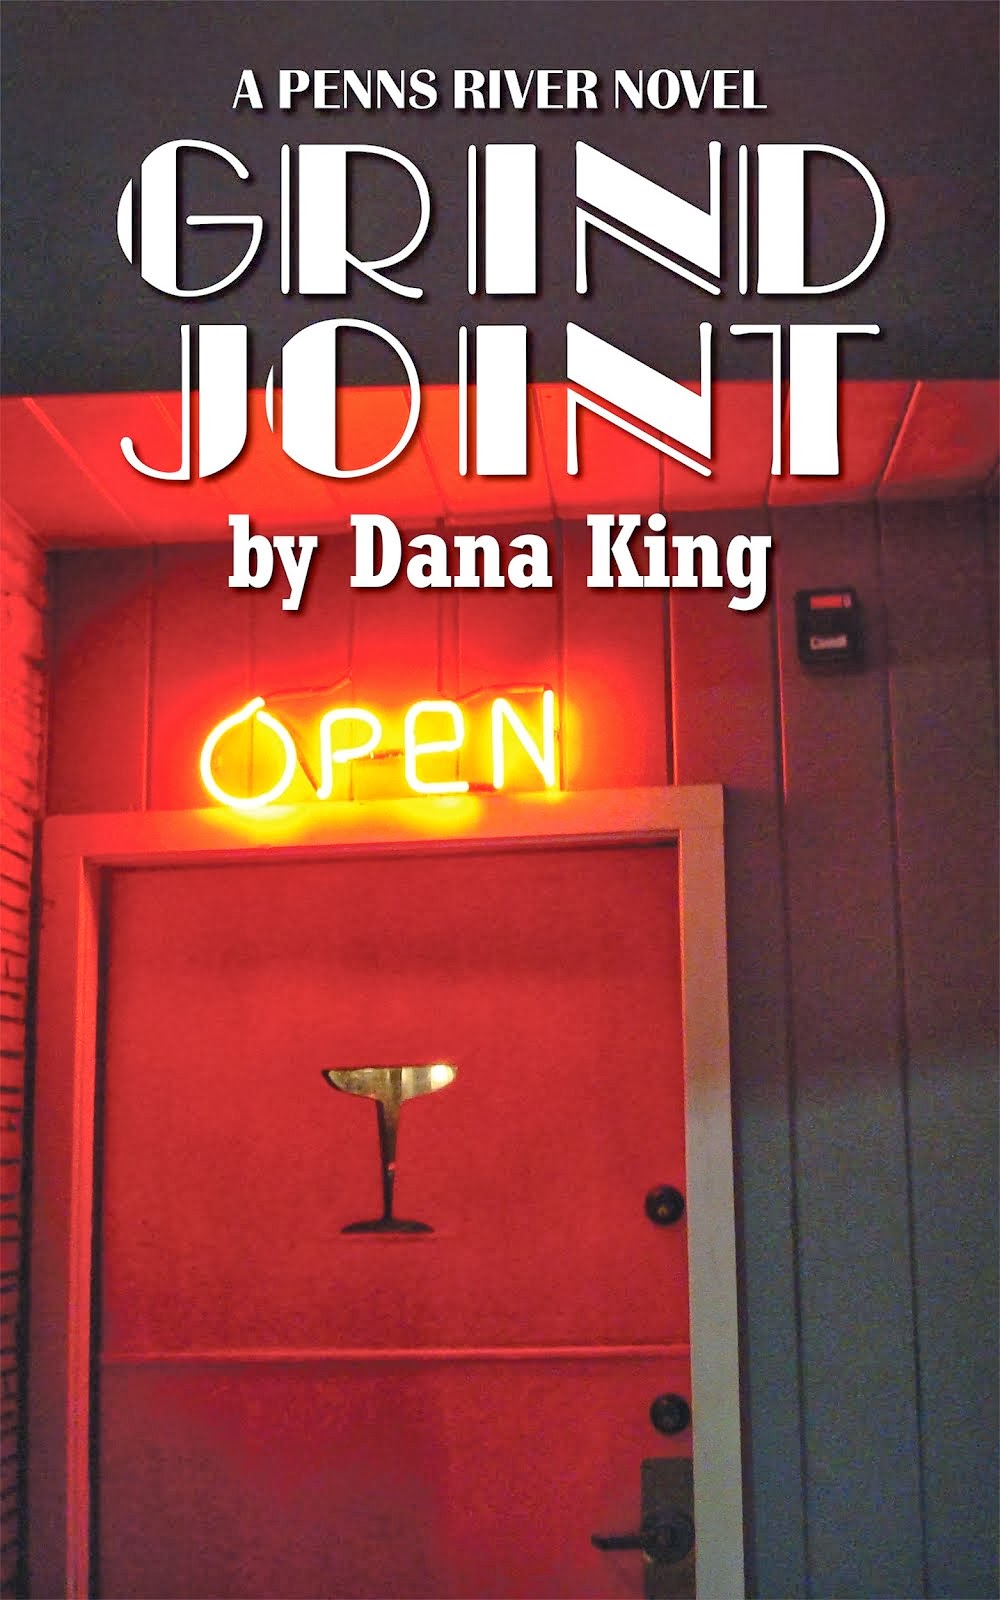 GRIND JOINT (e-book available through Amazon)